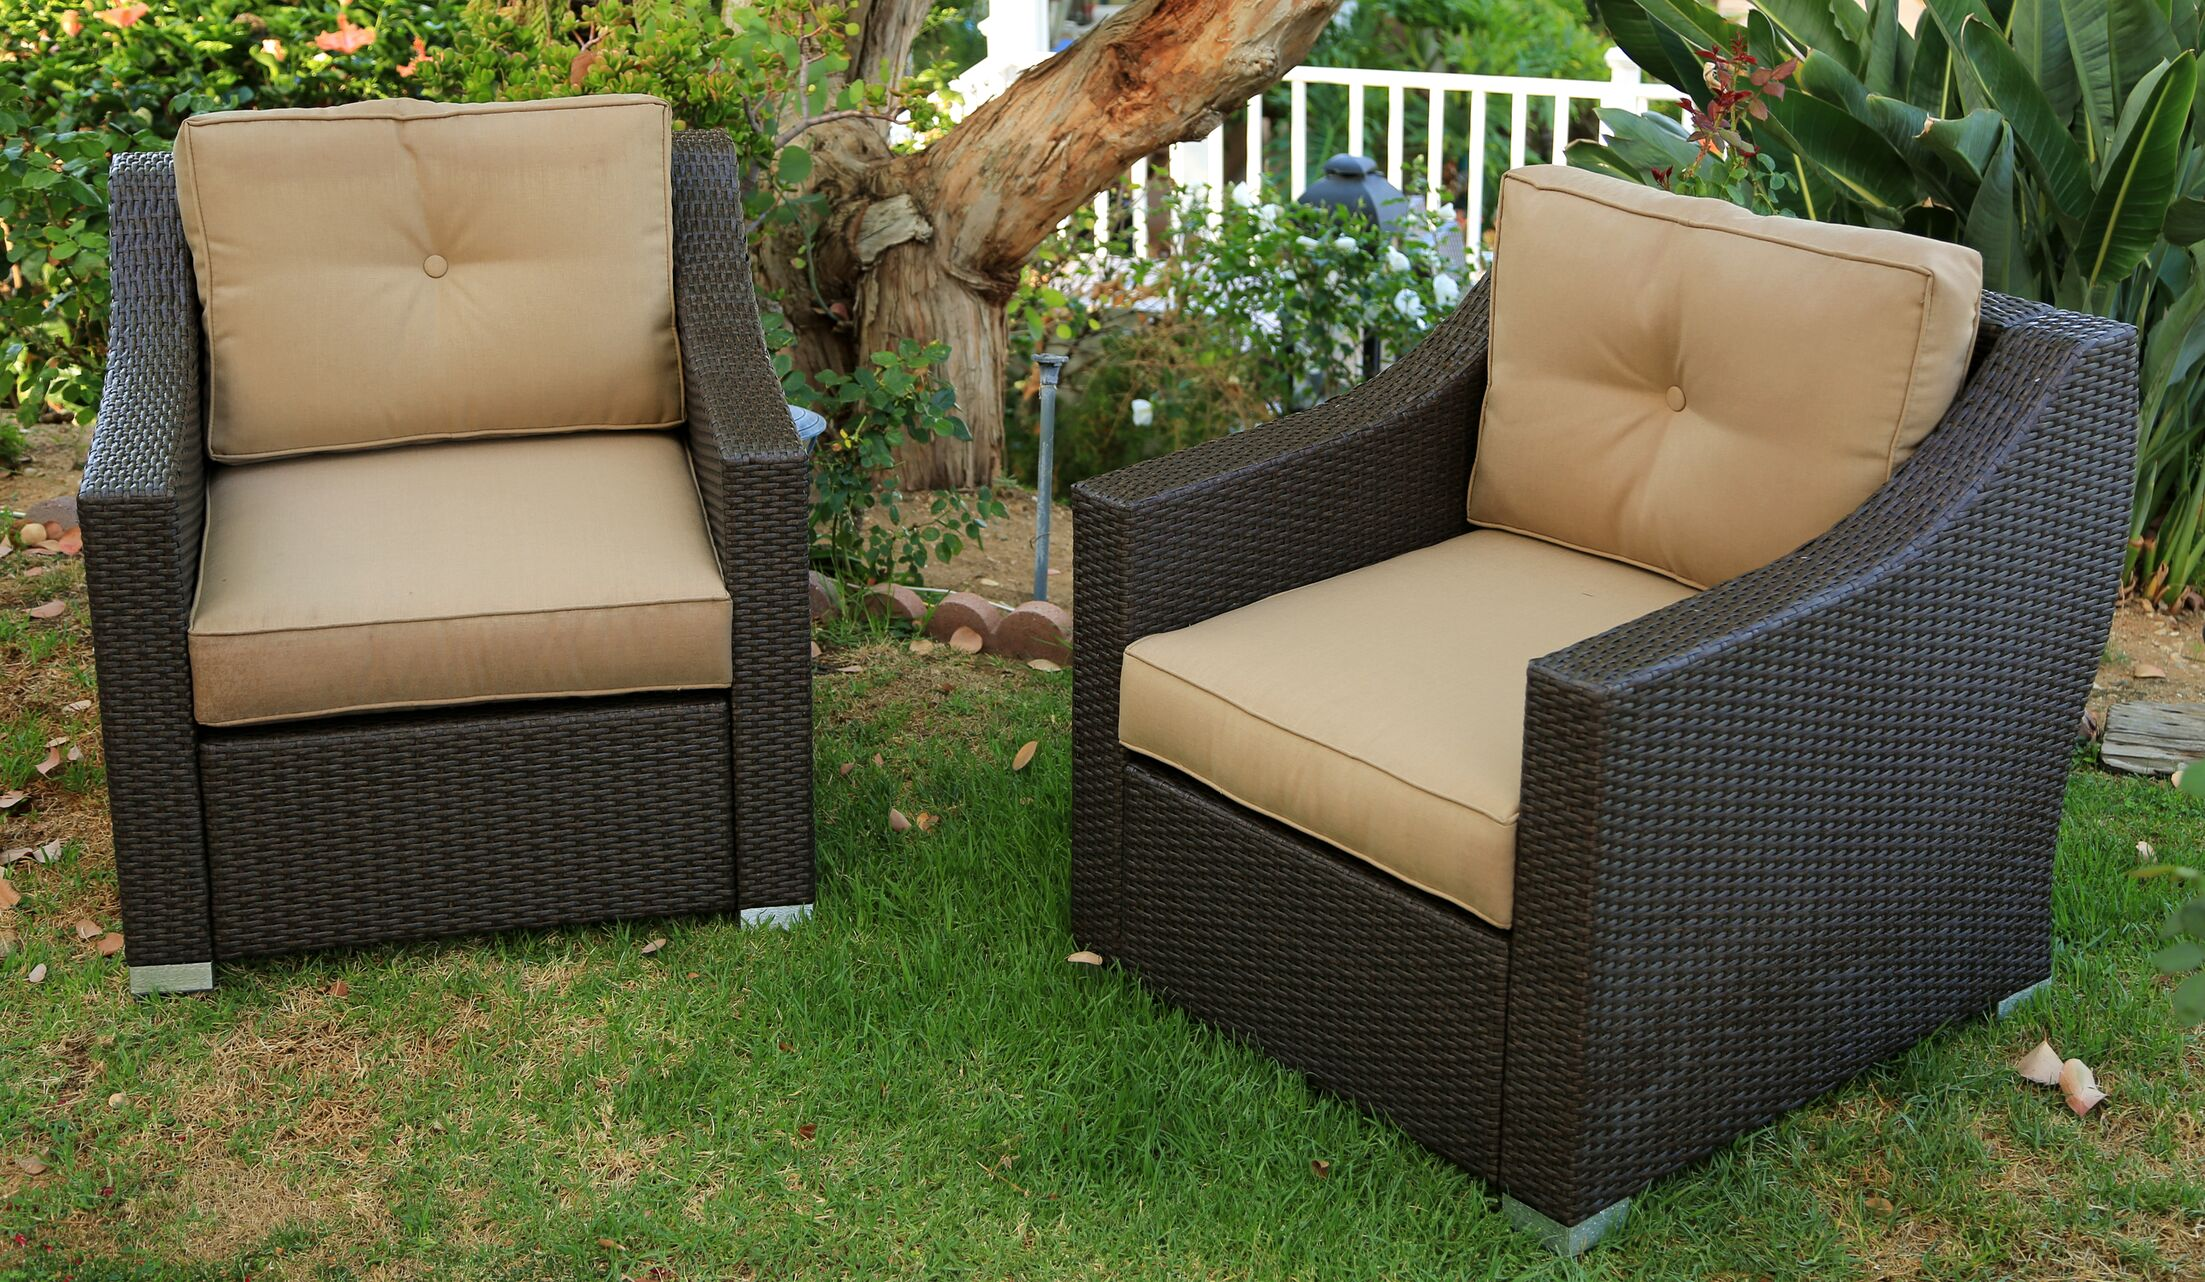 Tampa 2 Piece Conversation Set with Cushions